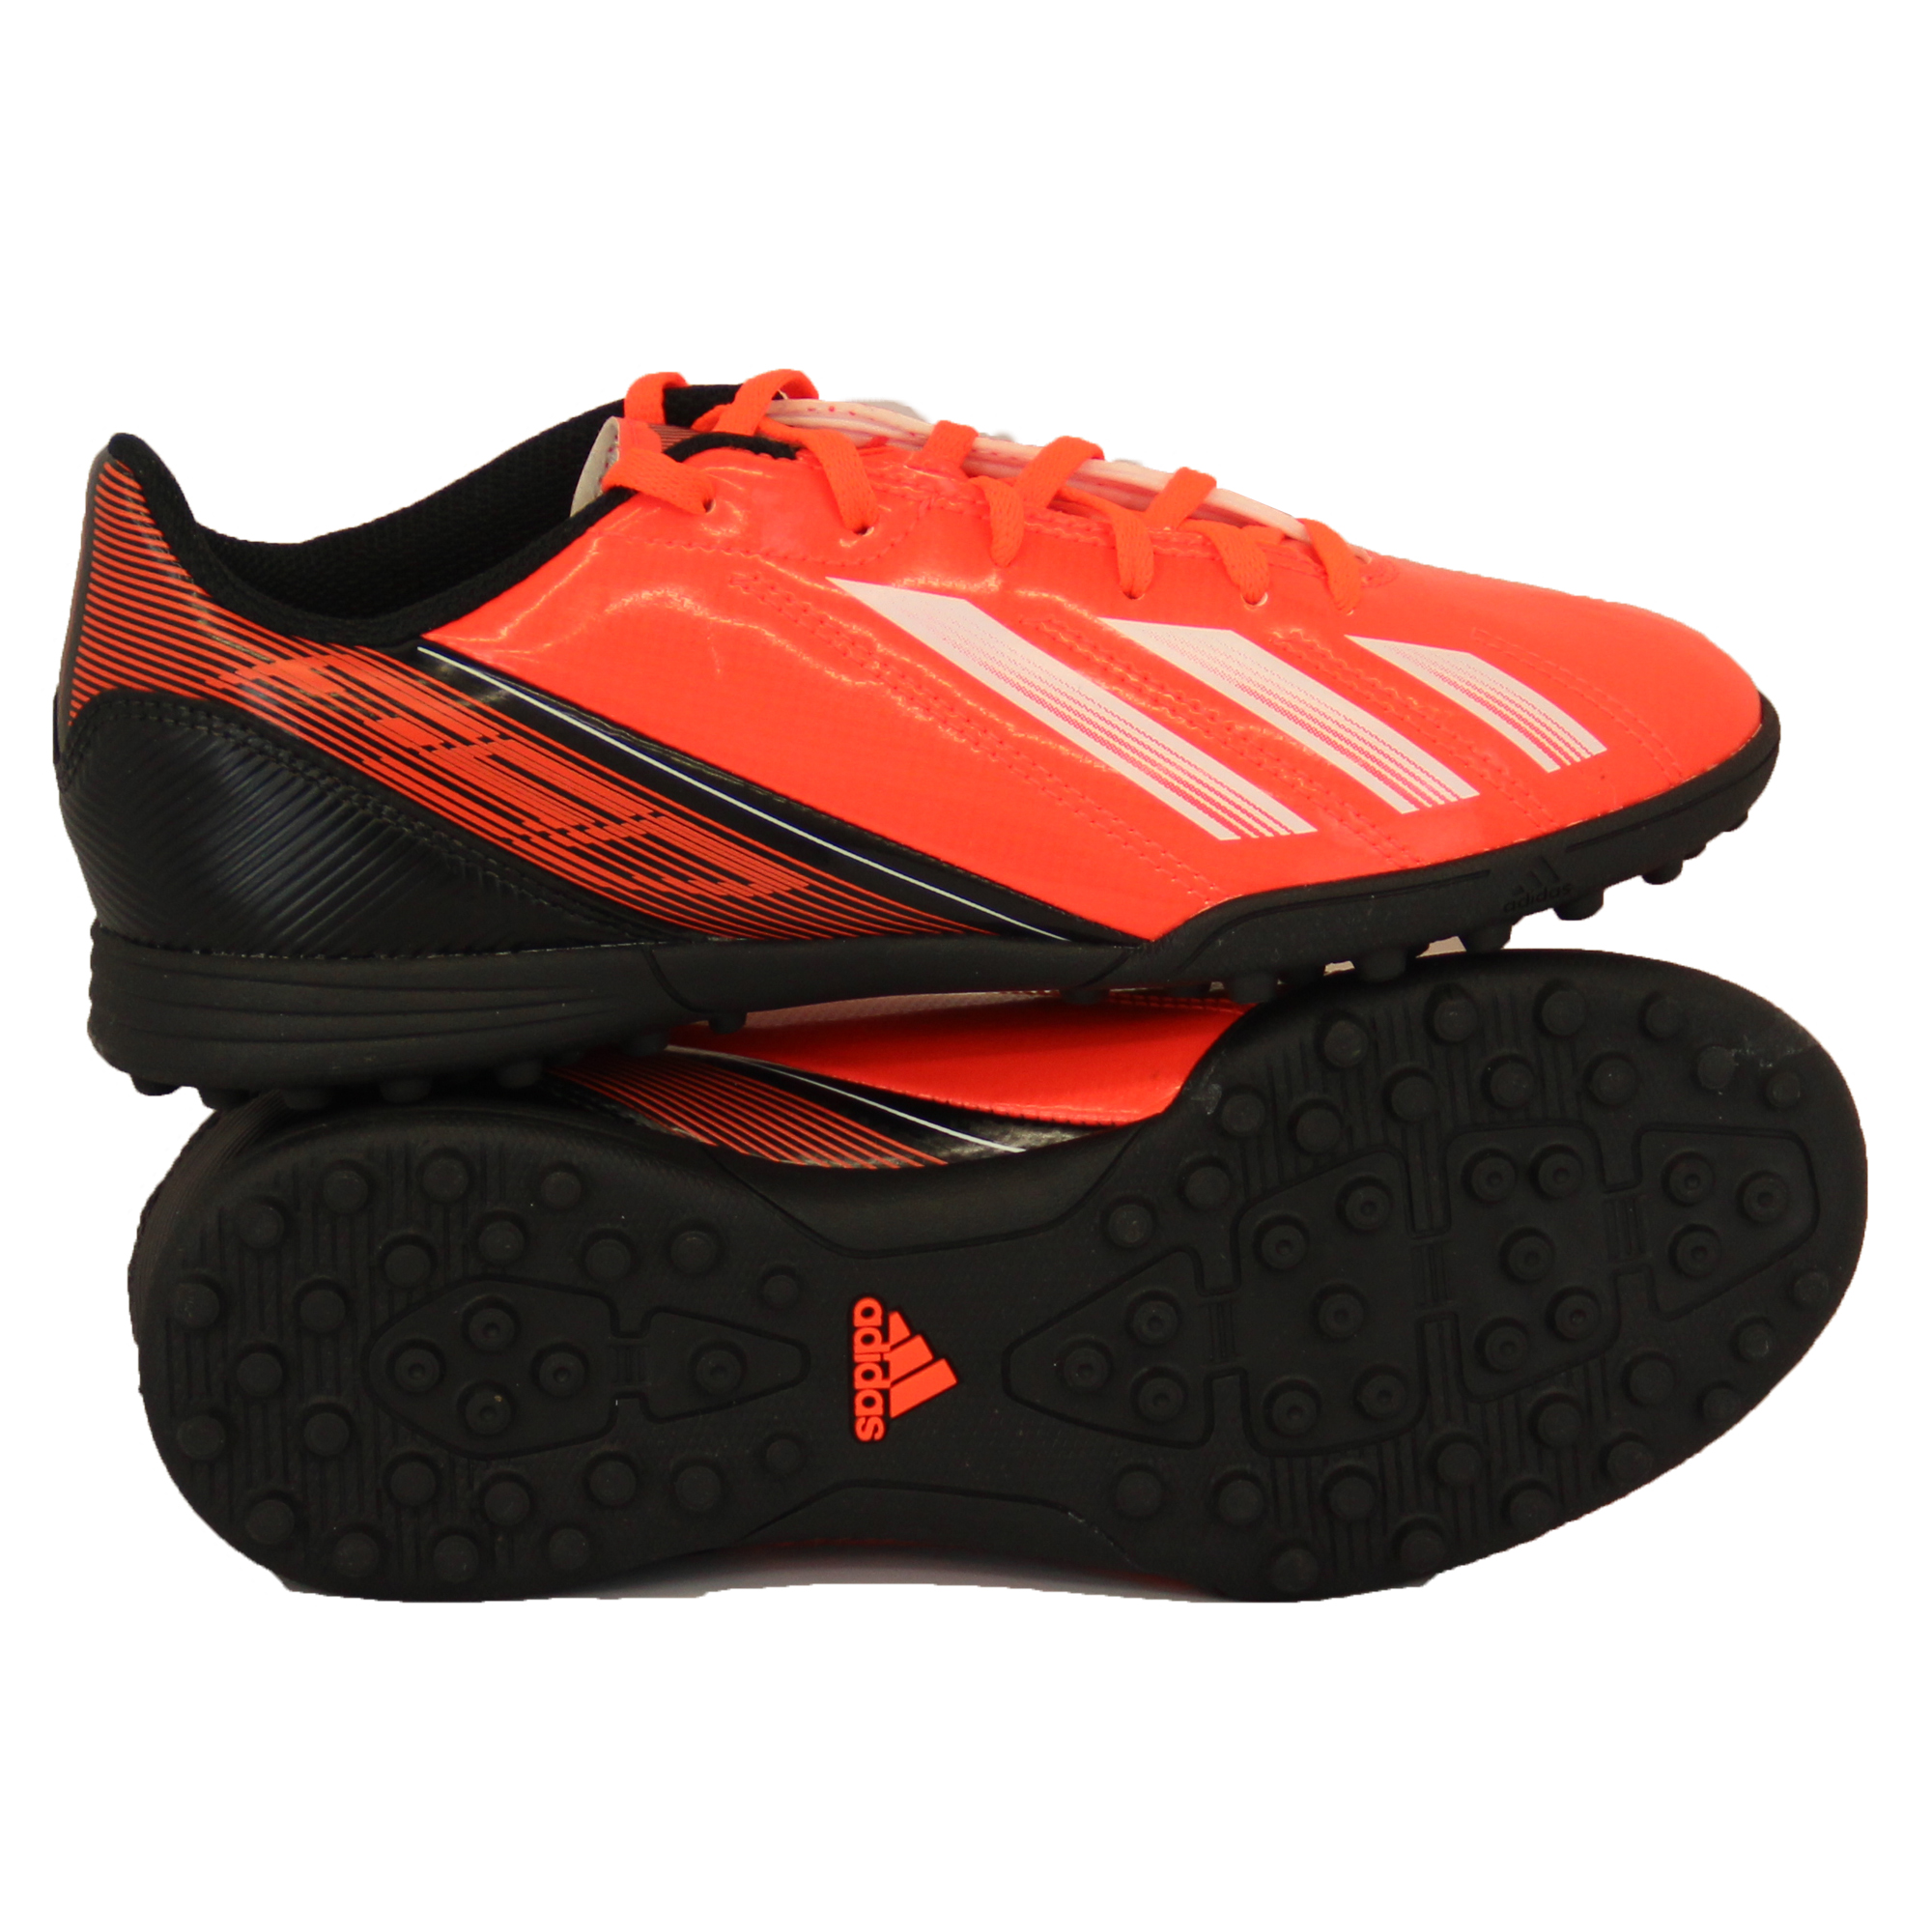 Boys-ADIDAS-Trainers-Kids-Football-Soccer-Astro-Turf-Shoes-Lace-Up-Neon-Youth thumbnail 9